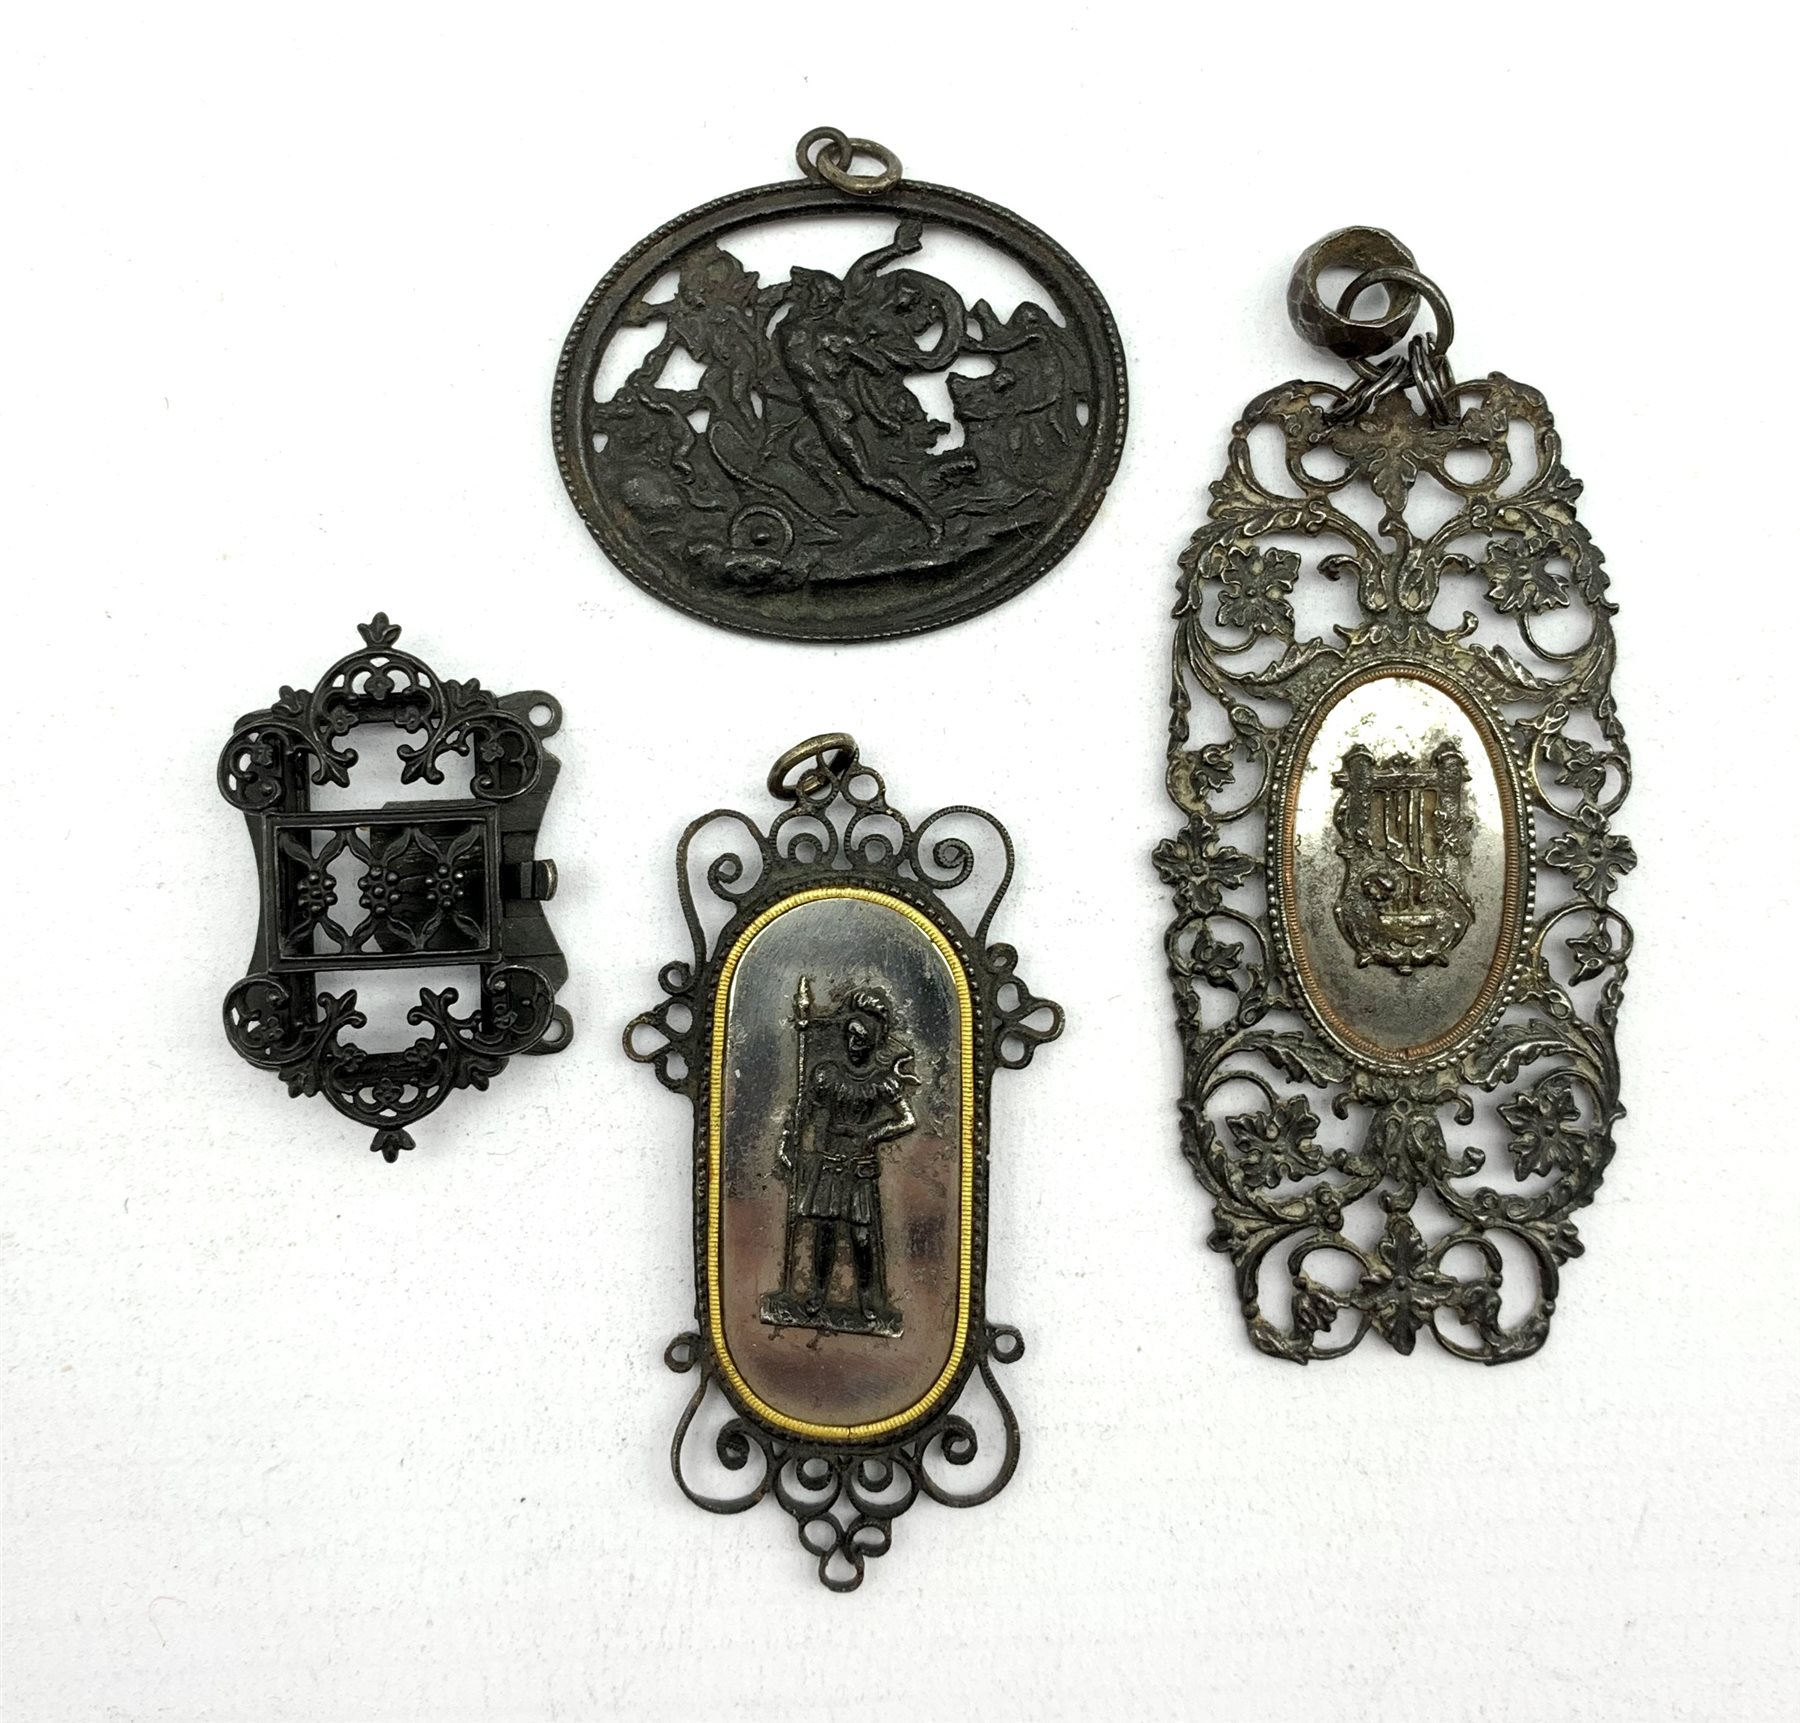 Simeon Pierre Devaranne (1789-1859) Berlin ironwork clasp inscribed 'Devaranne' and three other piec